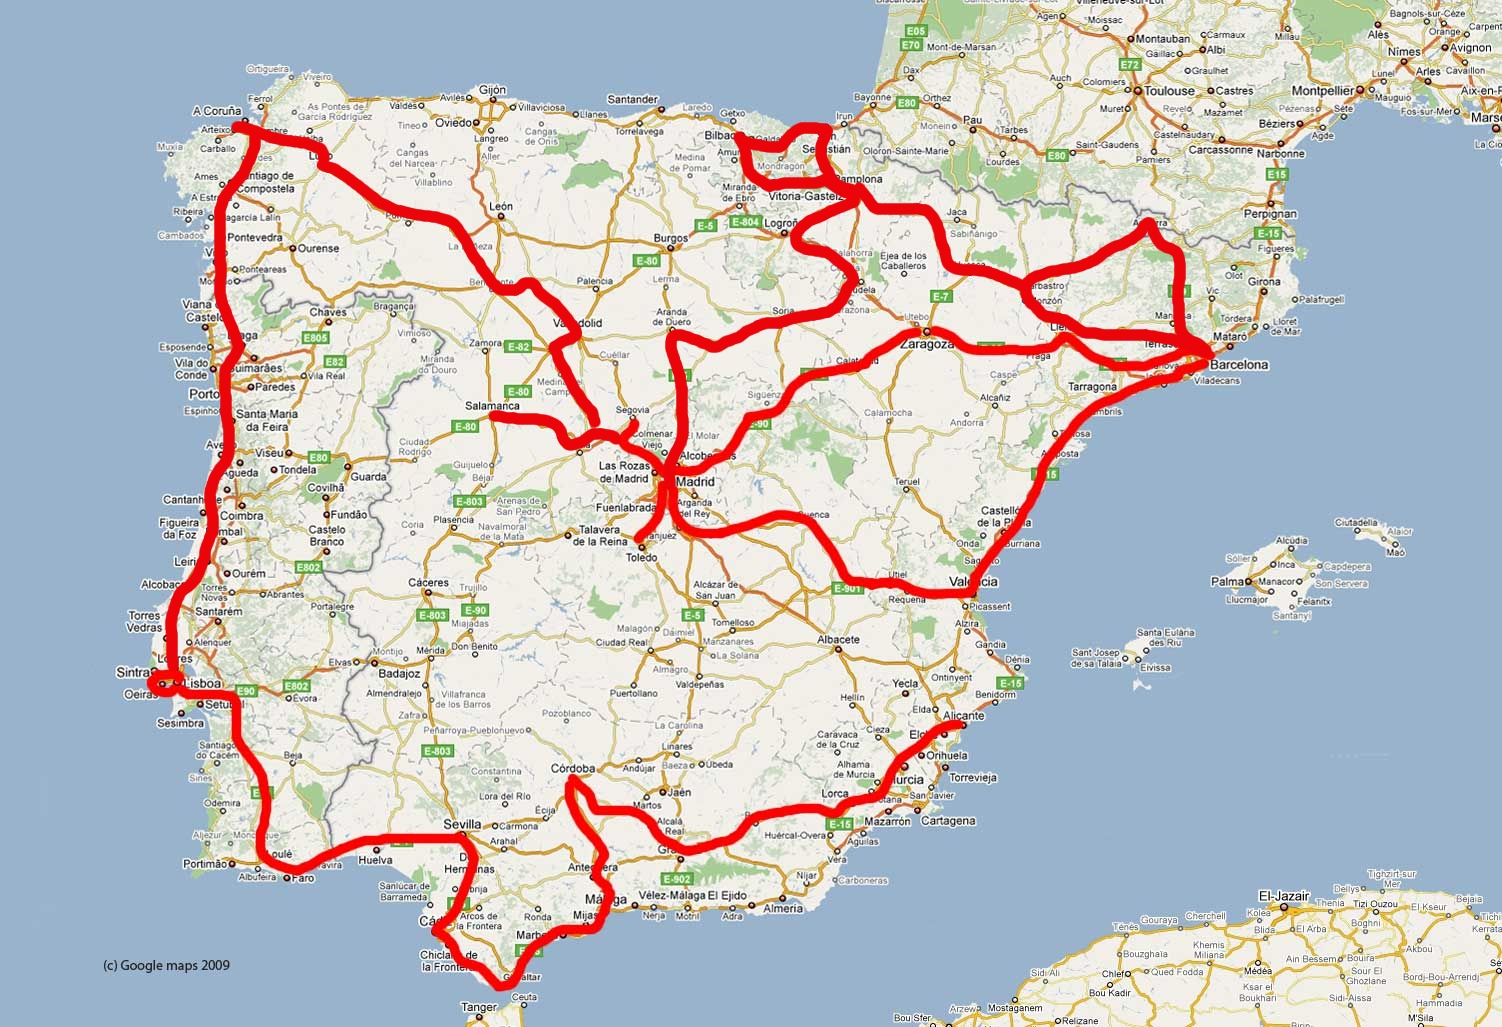 Here are the routs I have had traveling round Iberia